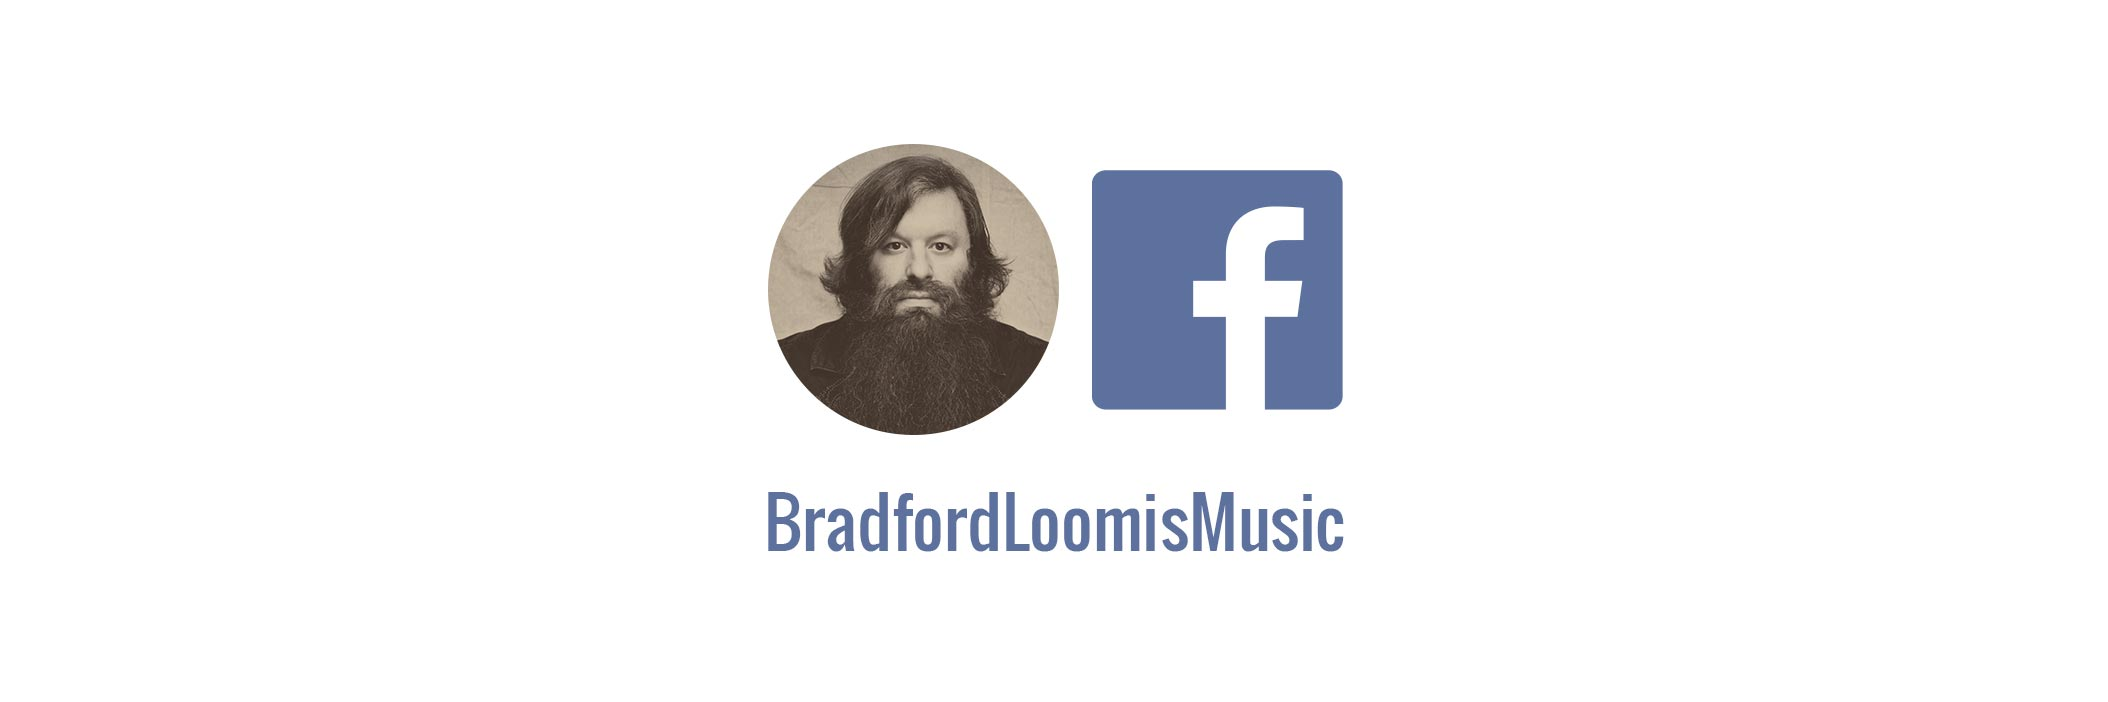 Bradford Loomis Music on Facebook